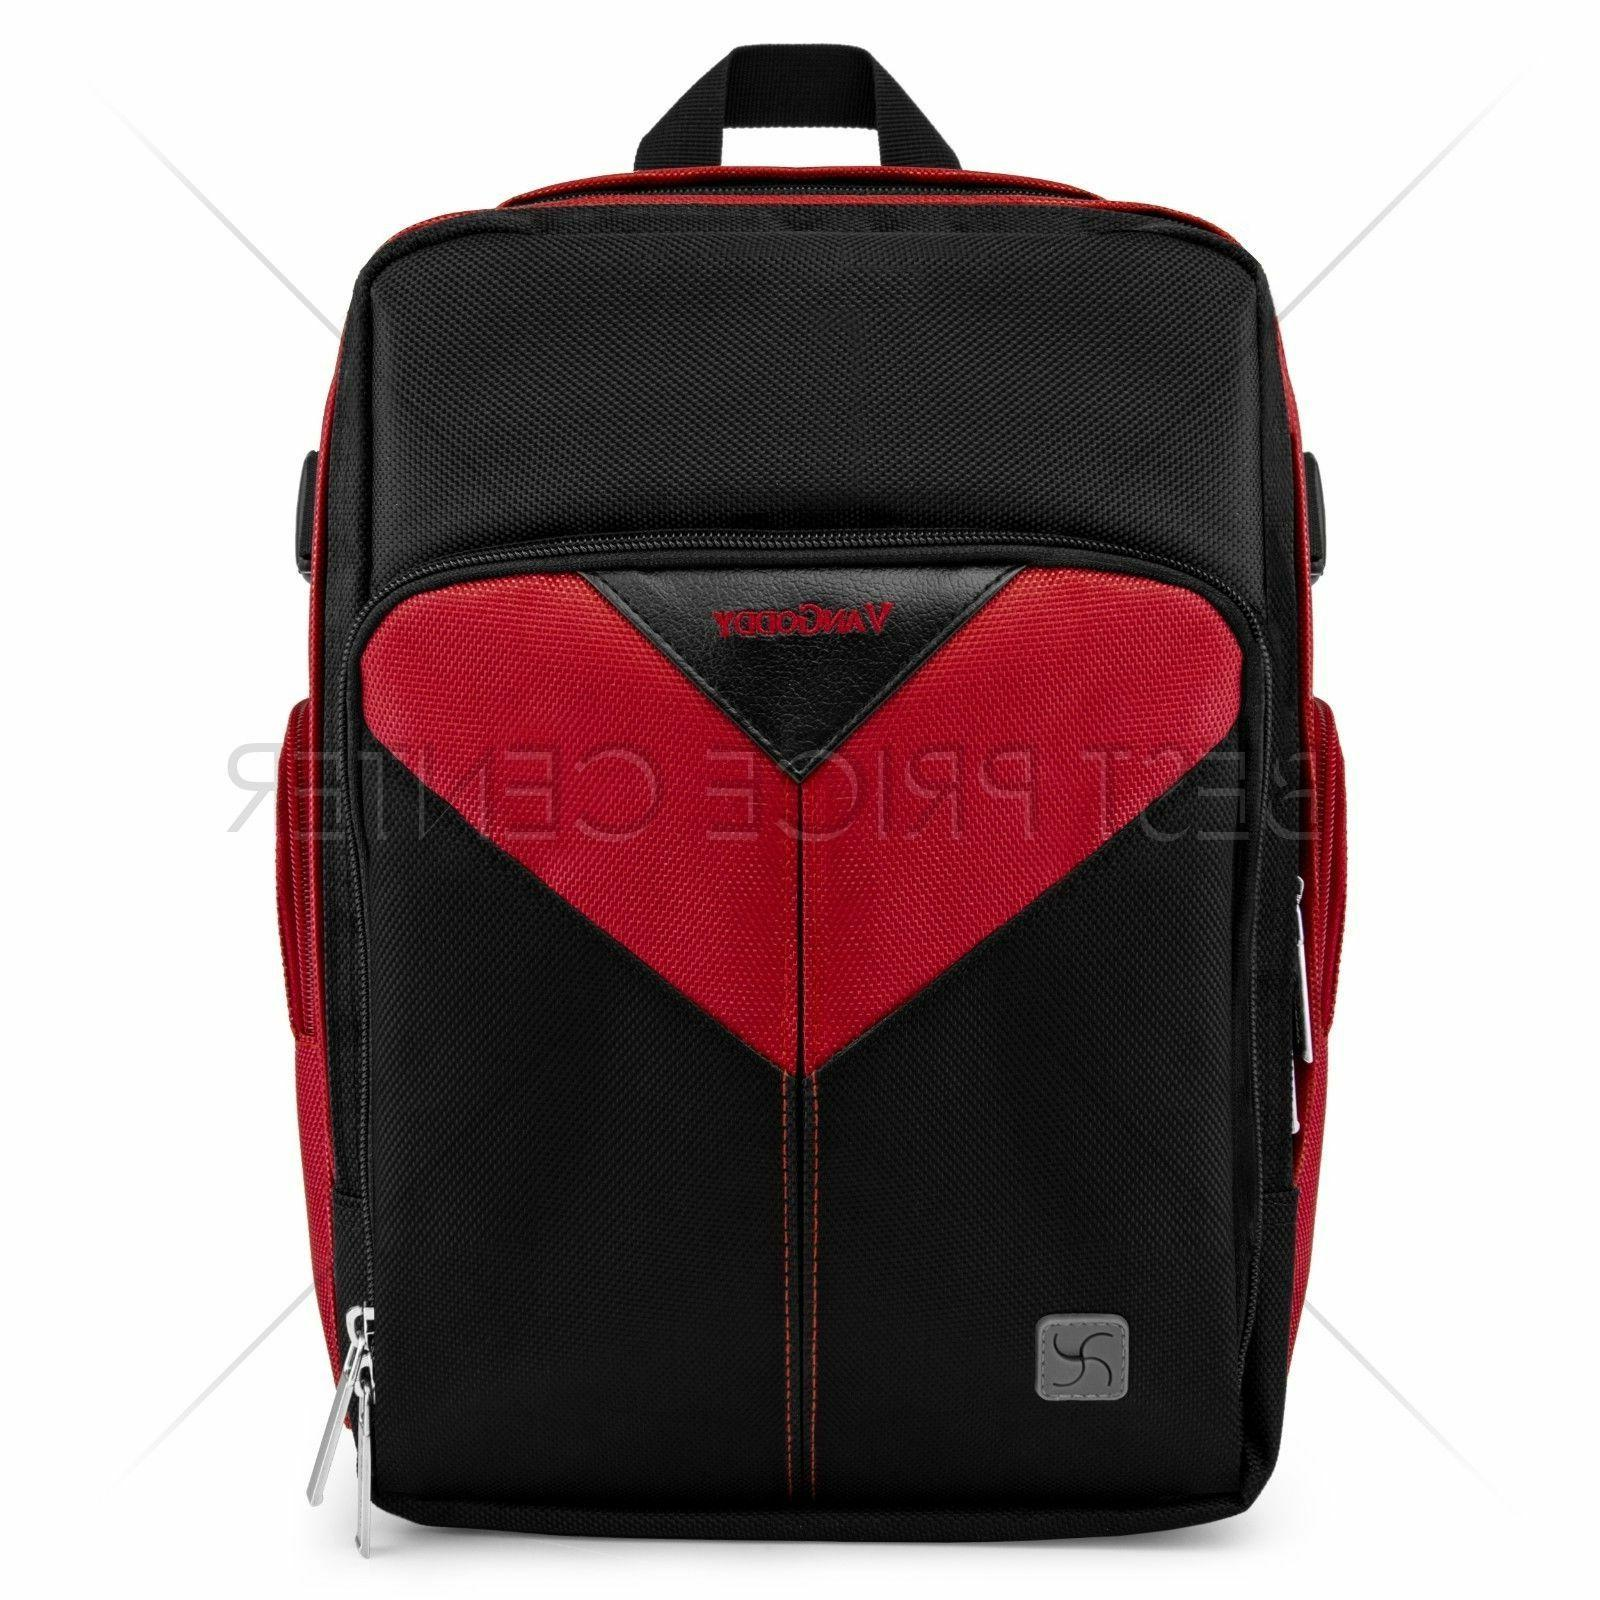 For Lytro PRO Compact Camera Backpack Bag Red